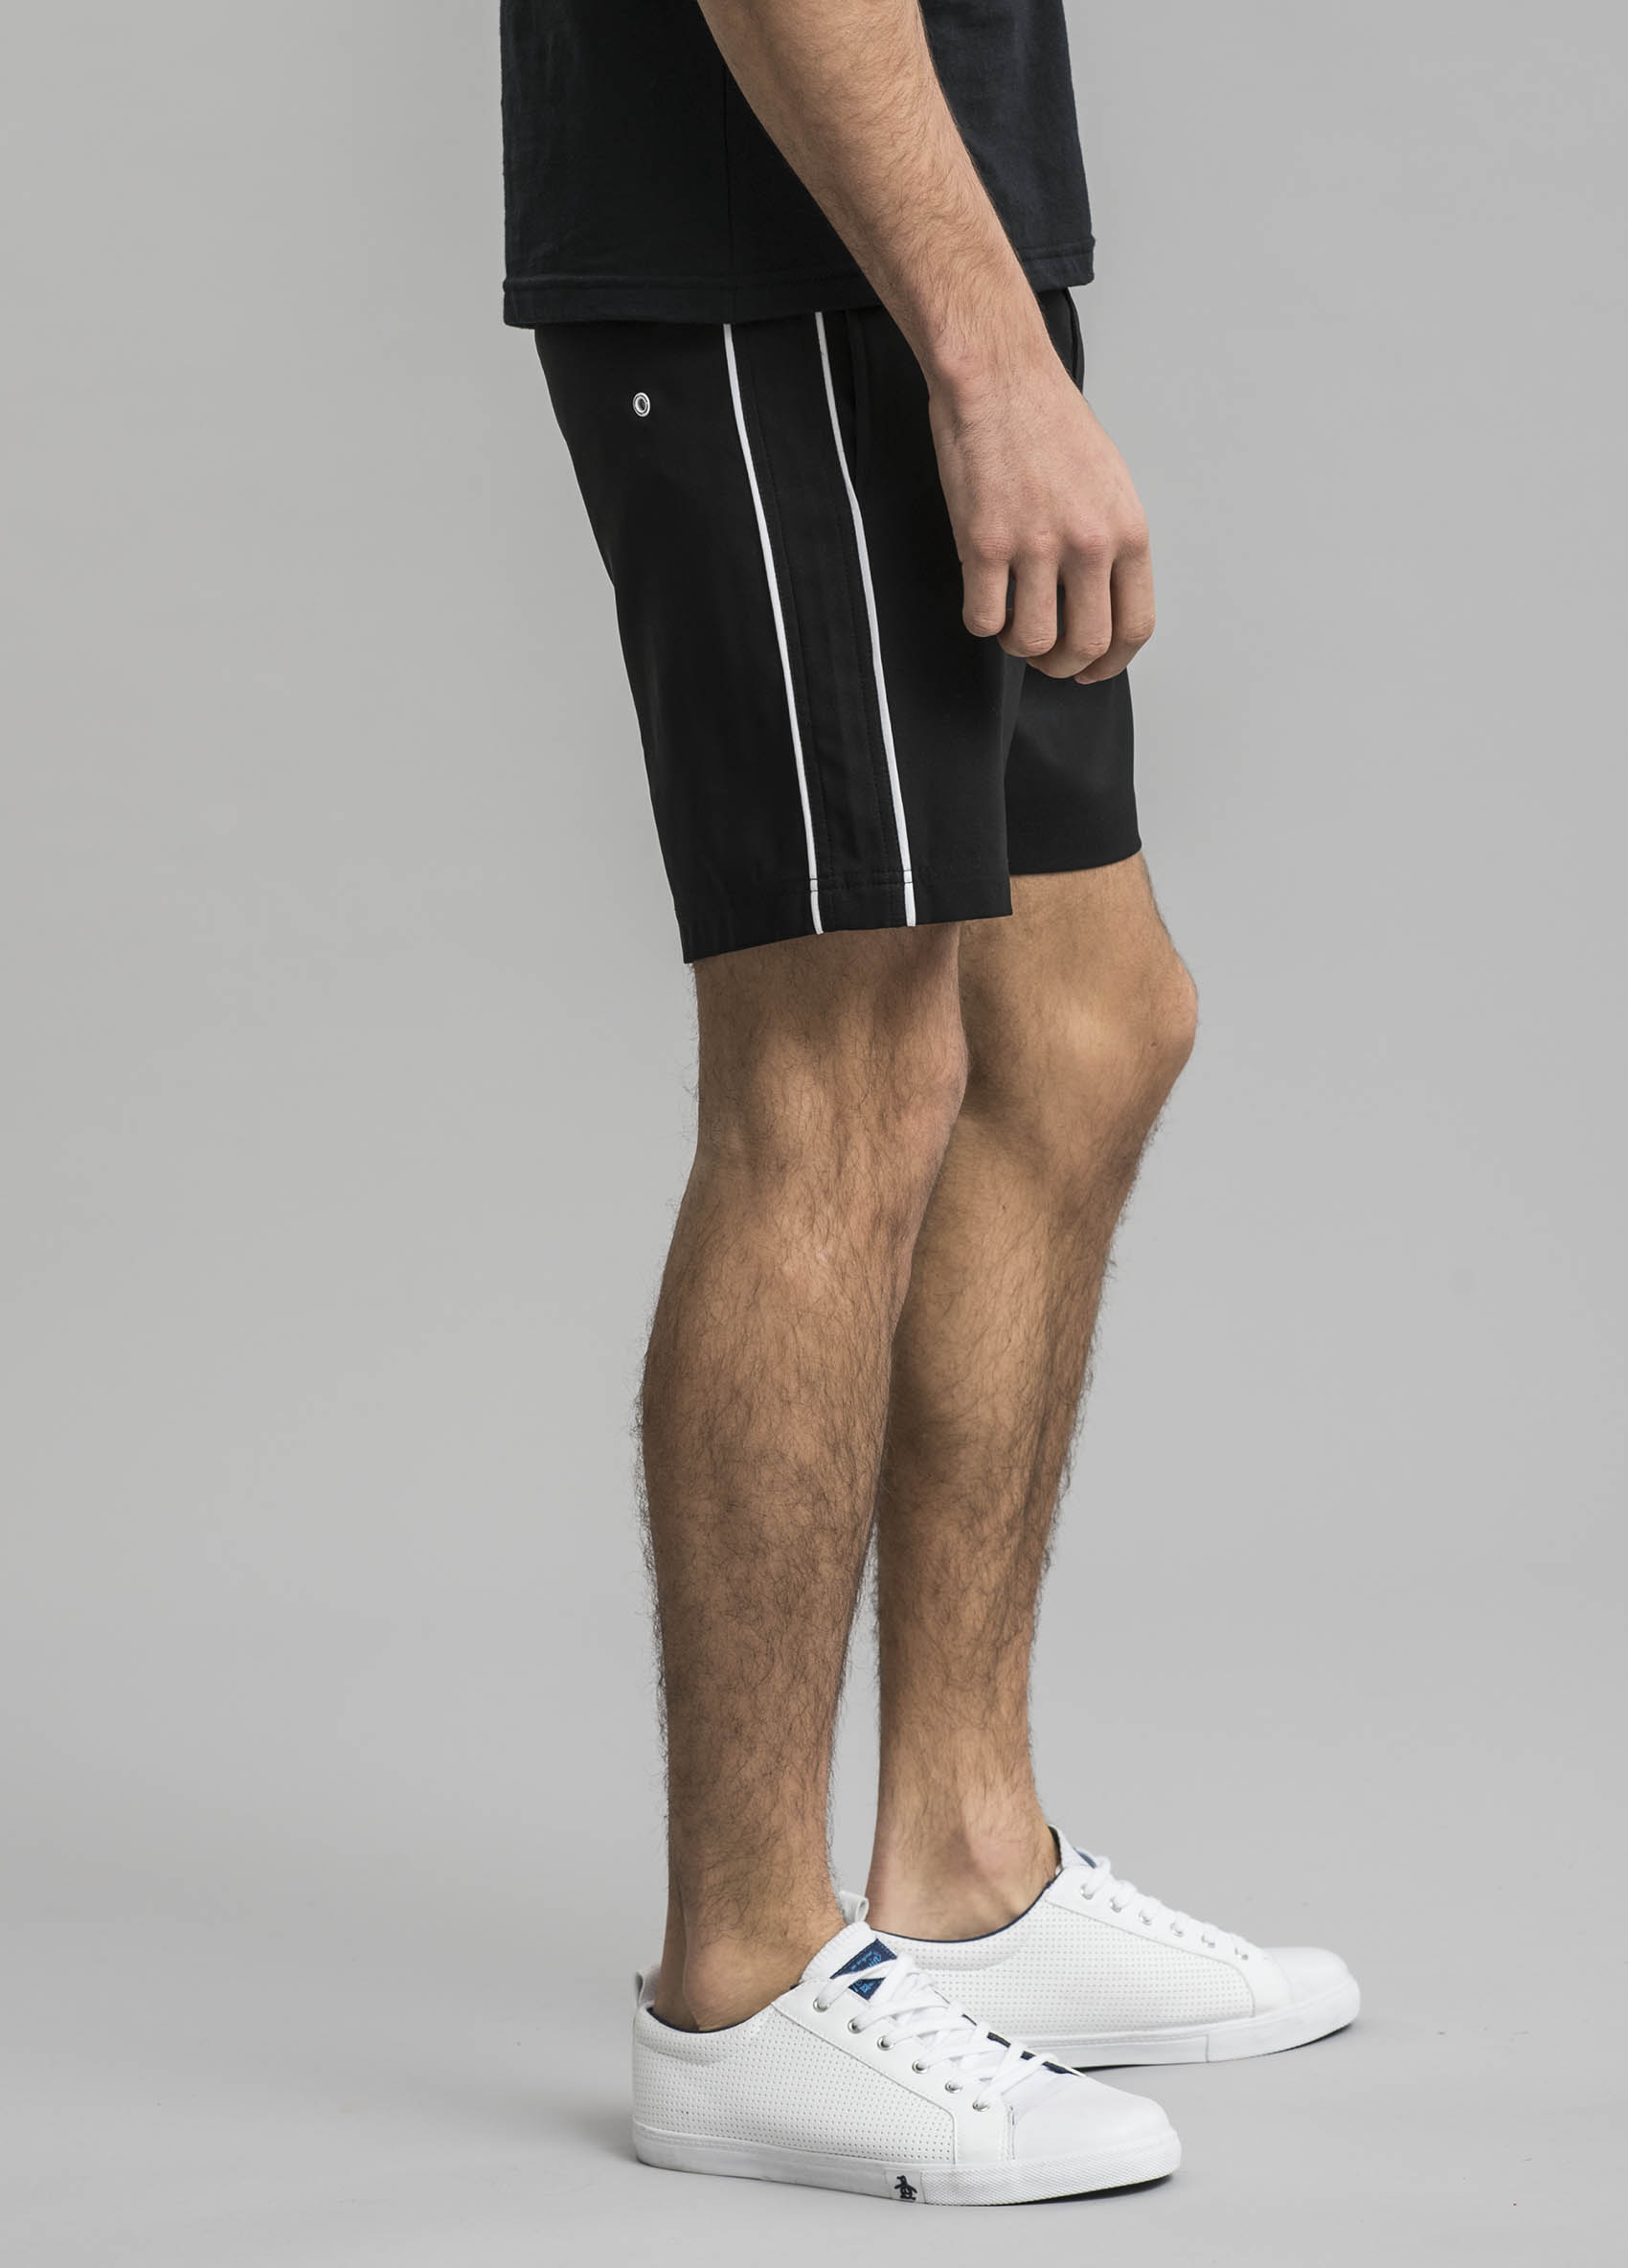 penguin_the-earl-volley-fixed-waist-swim-short_30-18-2021__picture-11742